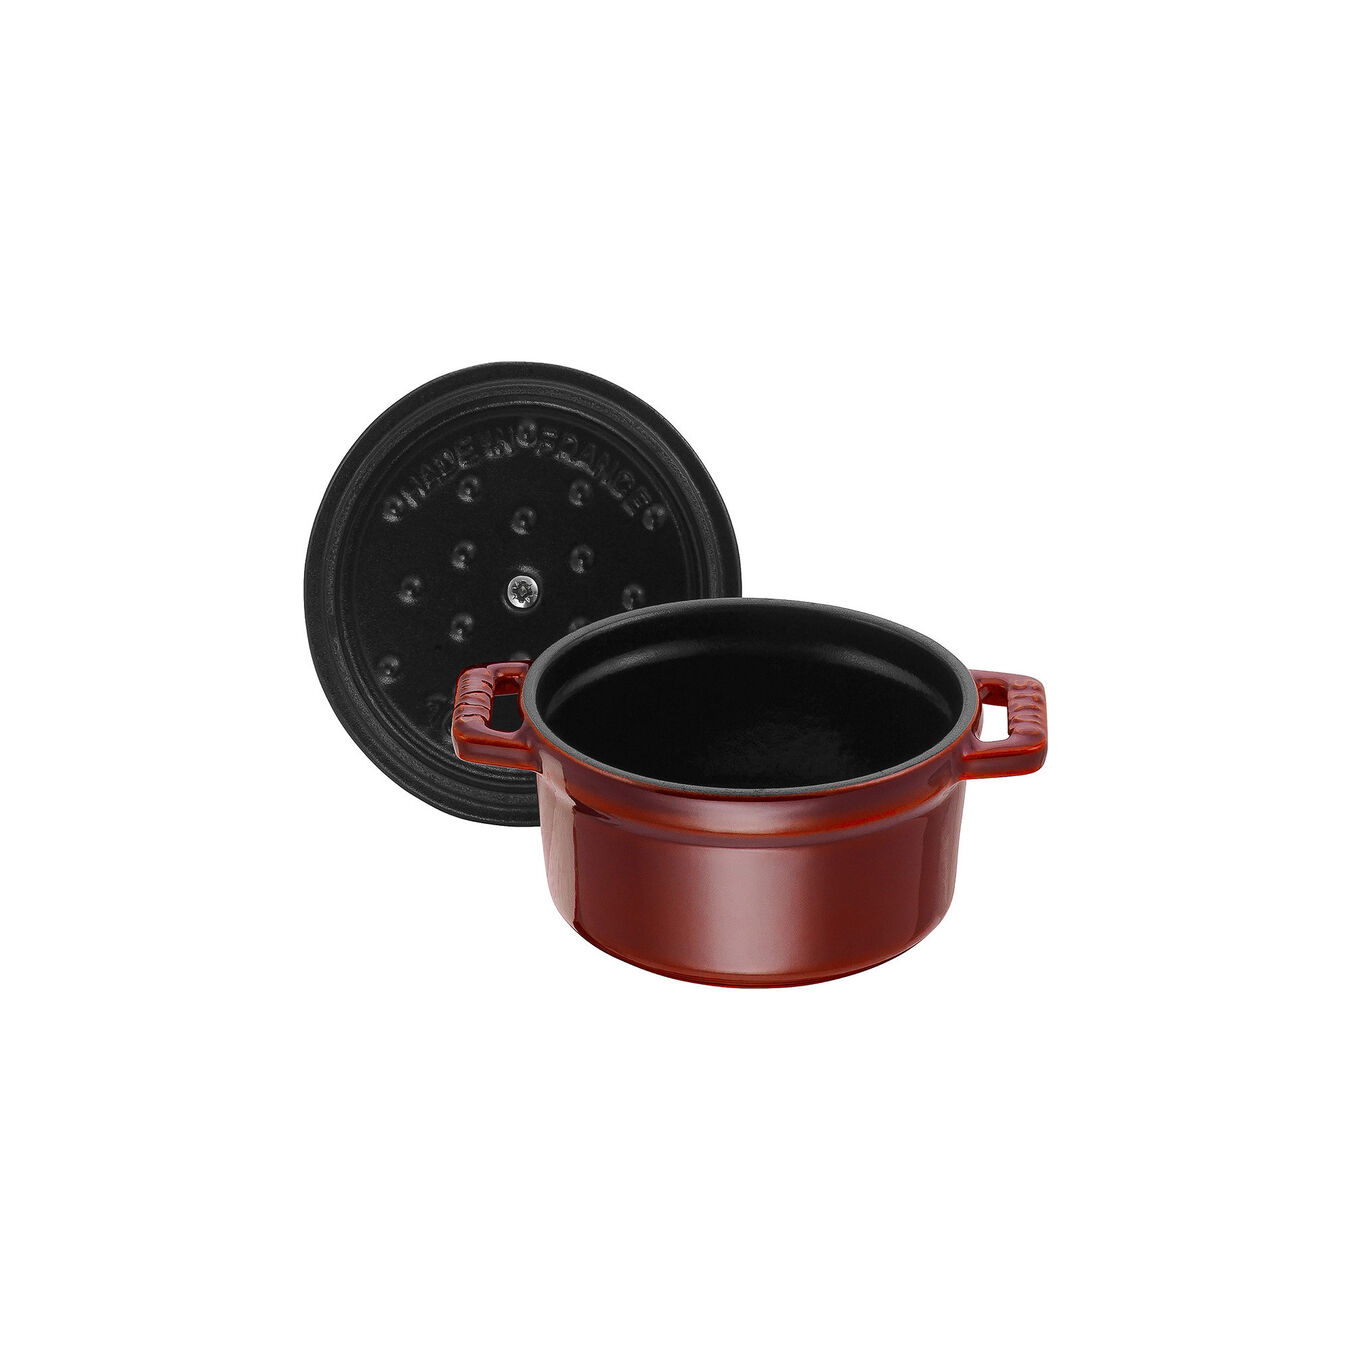 250 ml Cast iron round Mini Cocotte, Grenadine-Red,,large 5